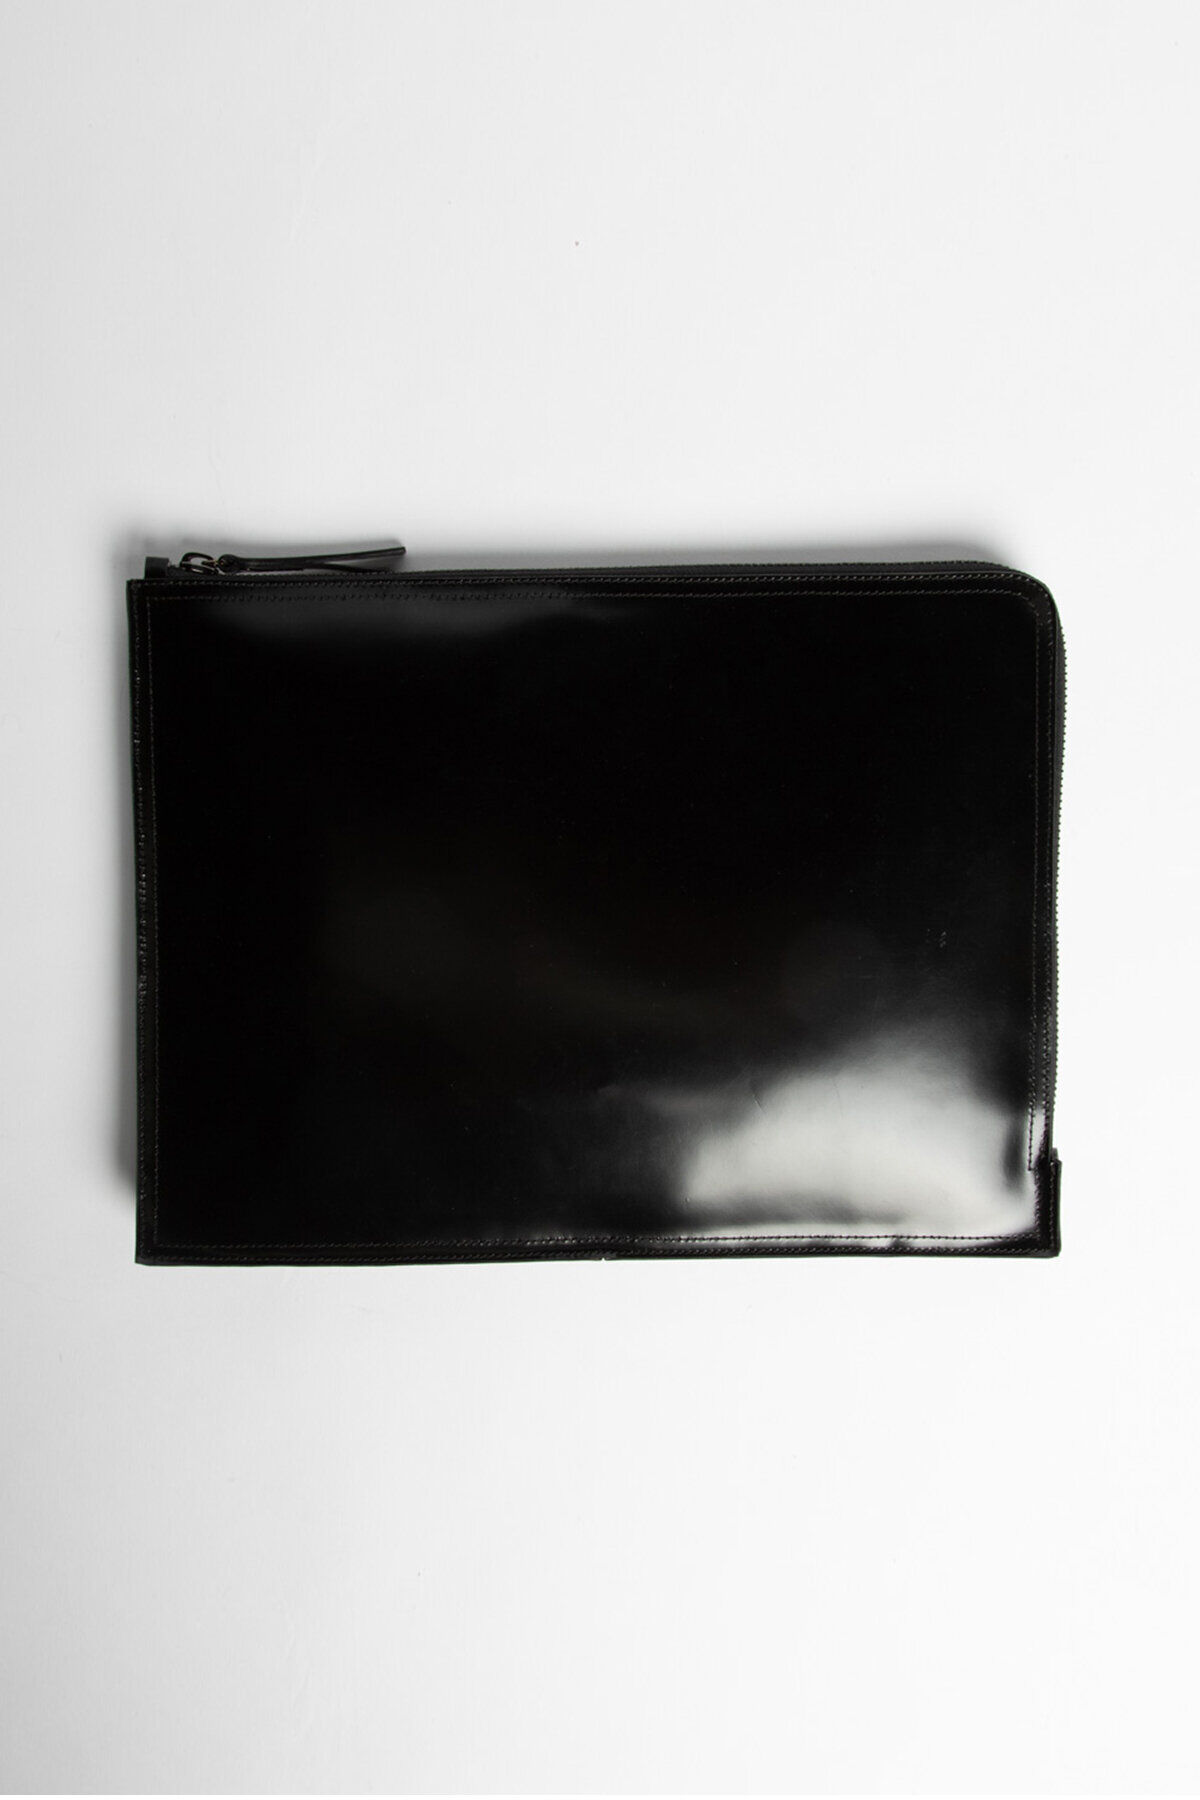 MACBOOK COVER Full-Grain Patent Leather